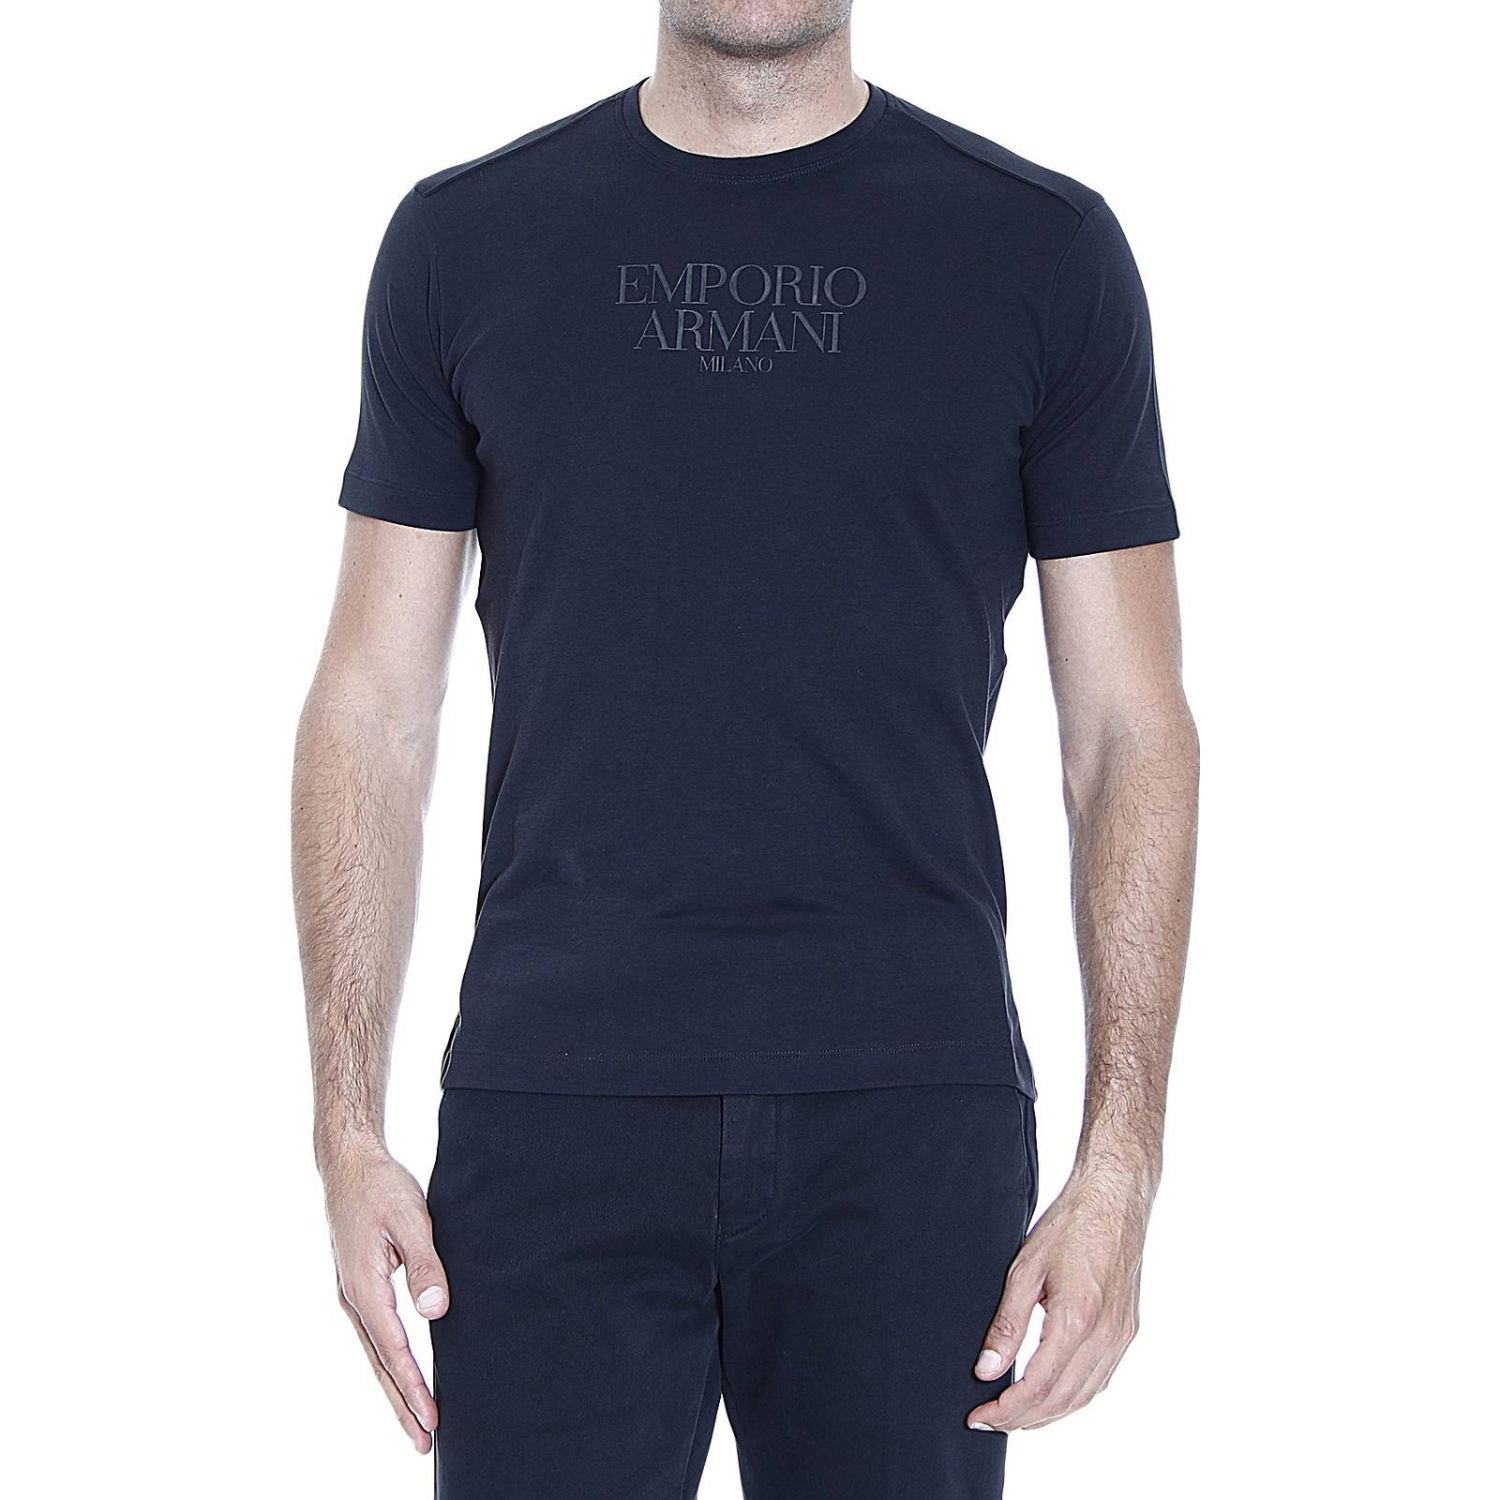 emporio armani t shirt in black for men lyst. Black Bedroom Furniture Sets. Home Design Ideas